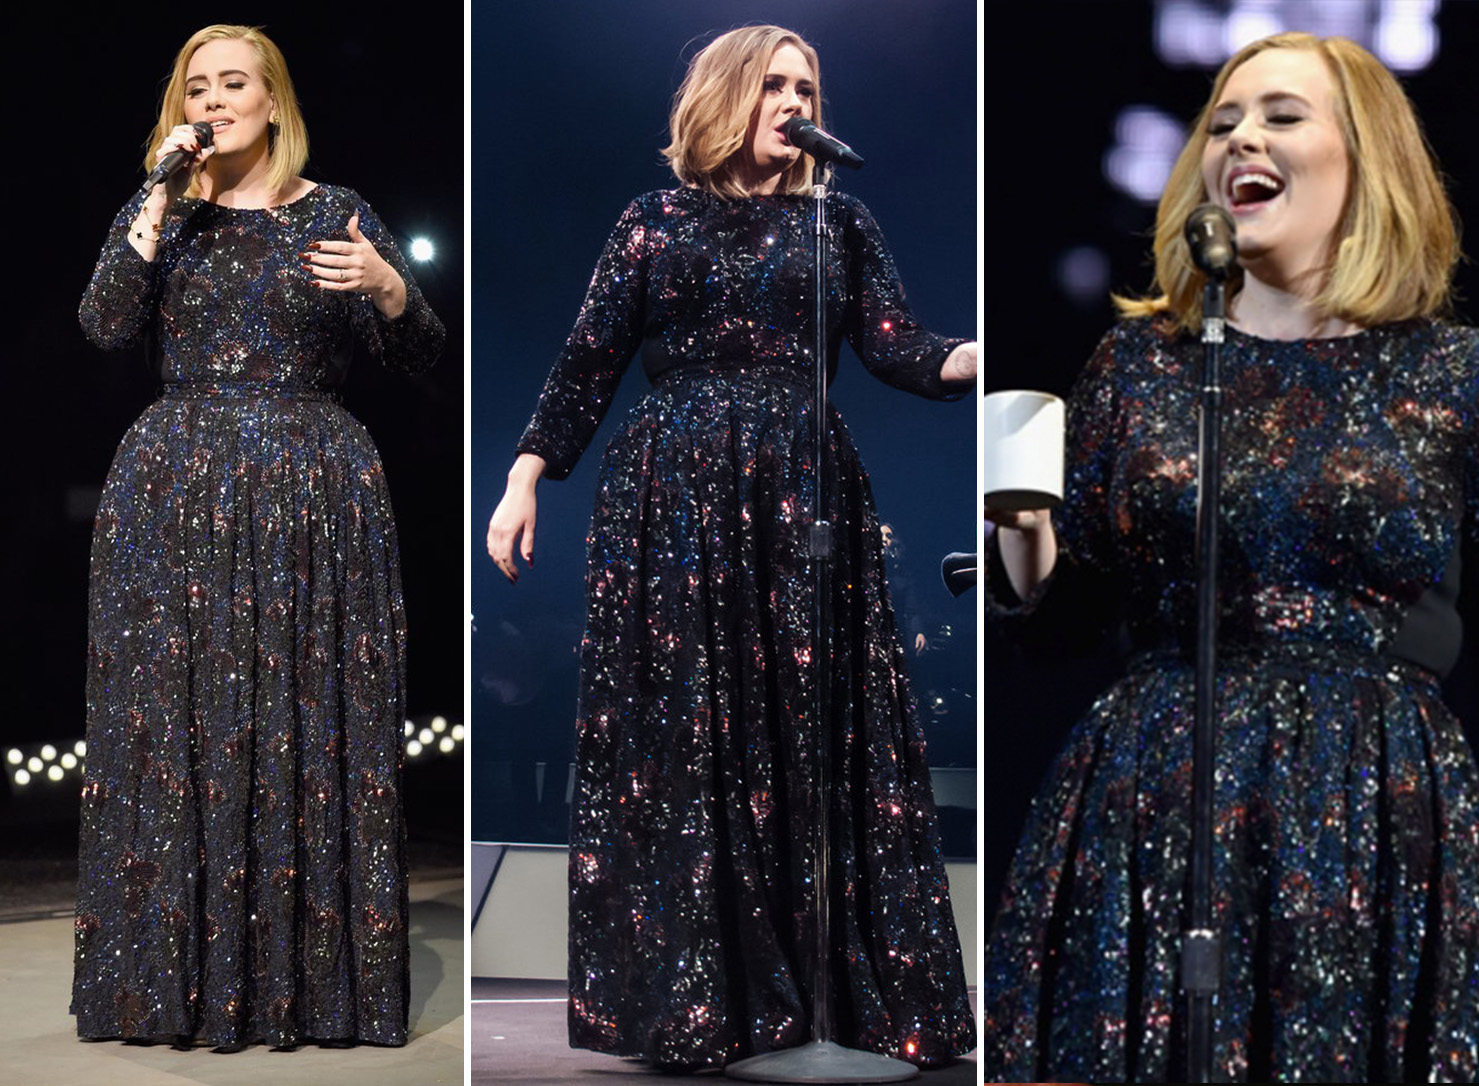 Adele's black gown